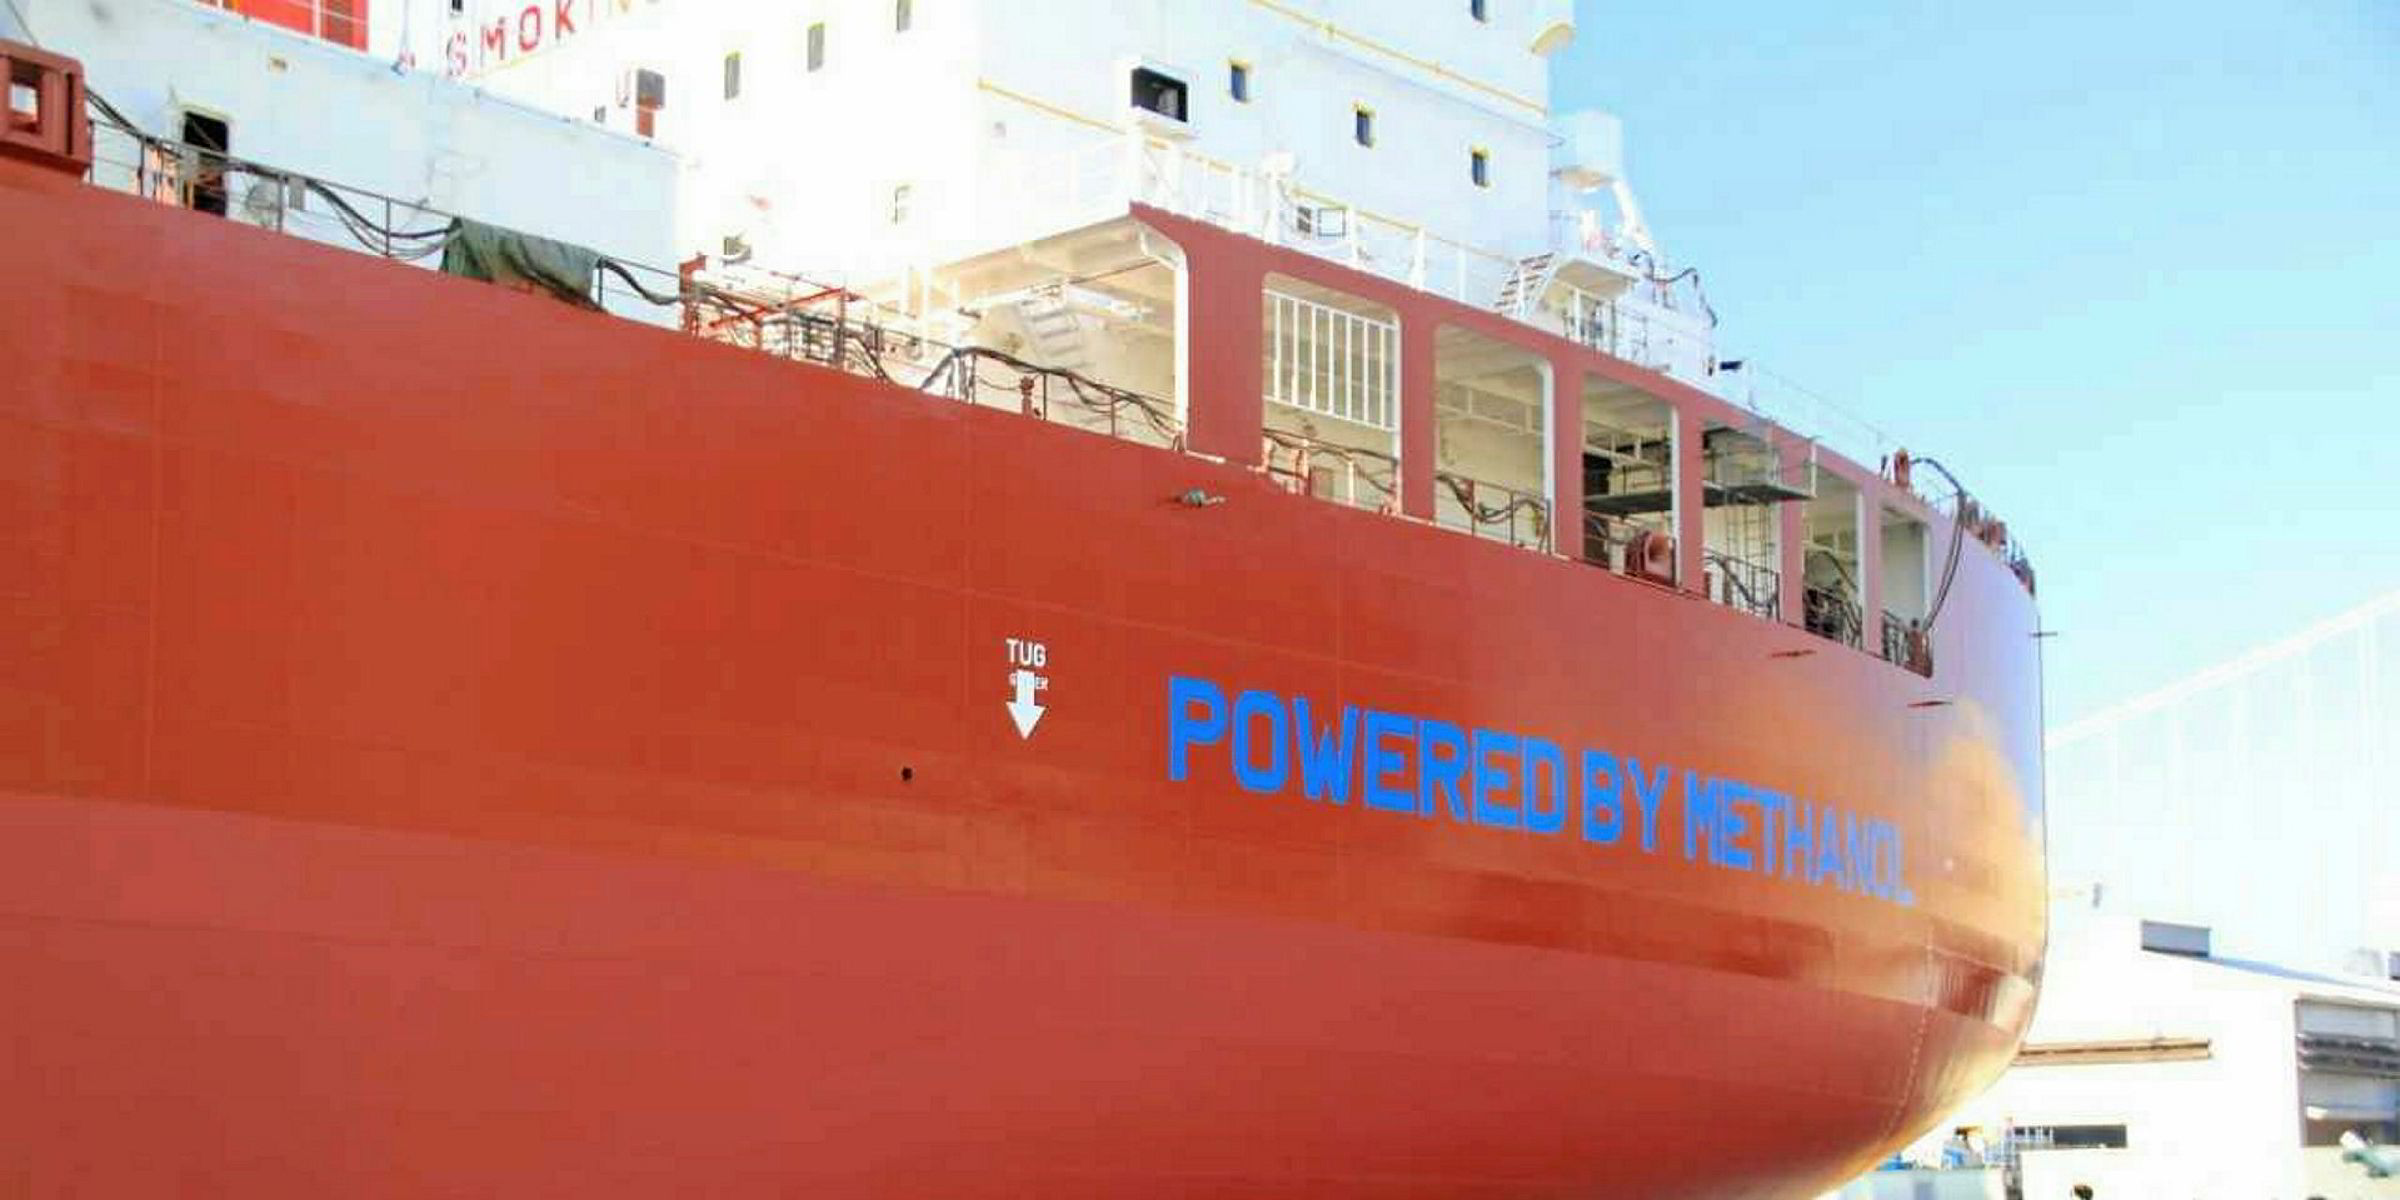 Waterfront MR tanker order goes to four | TradeWinds